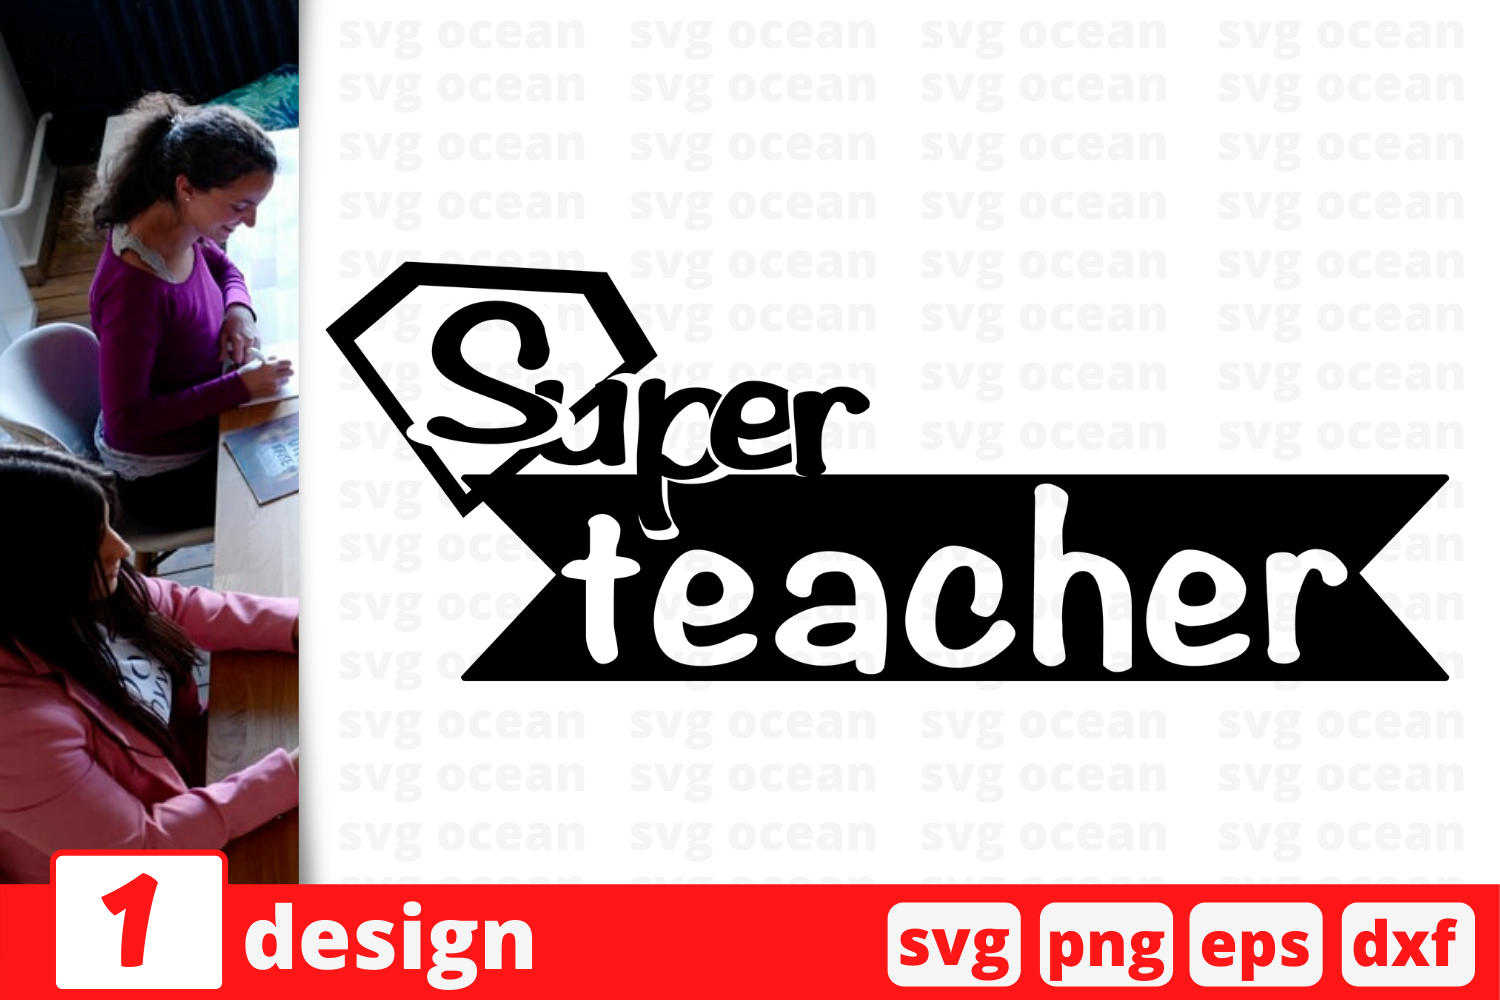 Download Free Super Teacher Svg For Cricut Graphic By Svgocean Creative Fabrica for Cricut Explore, Silhouette and other cutting machines.